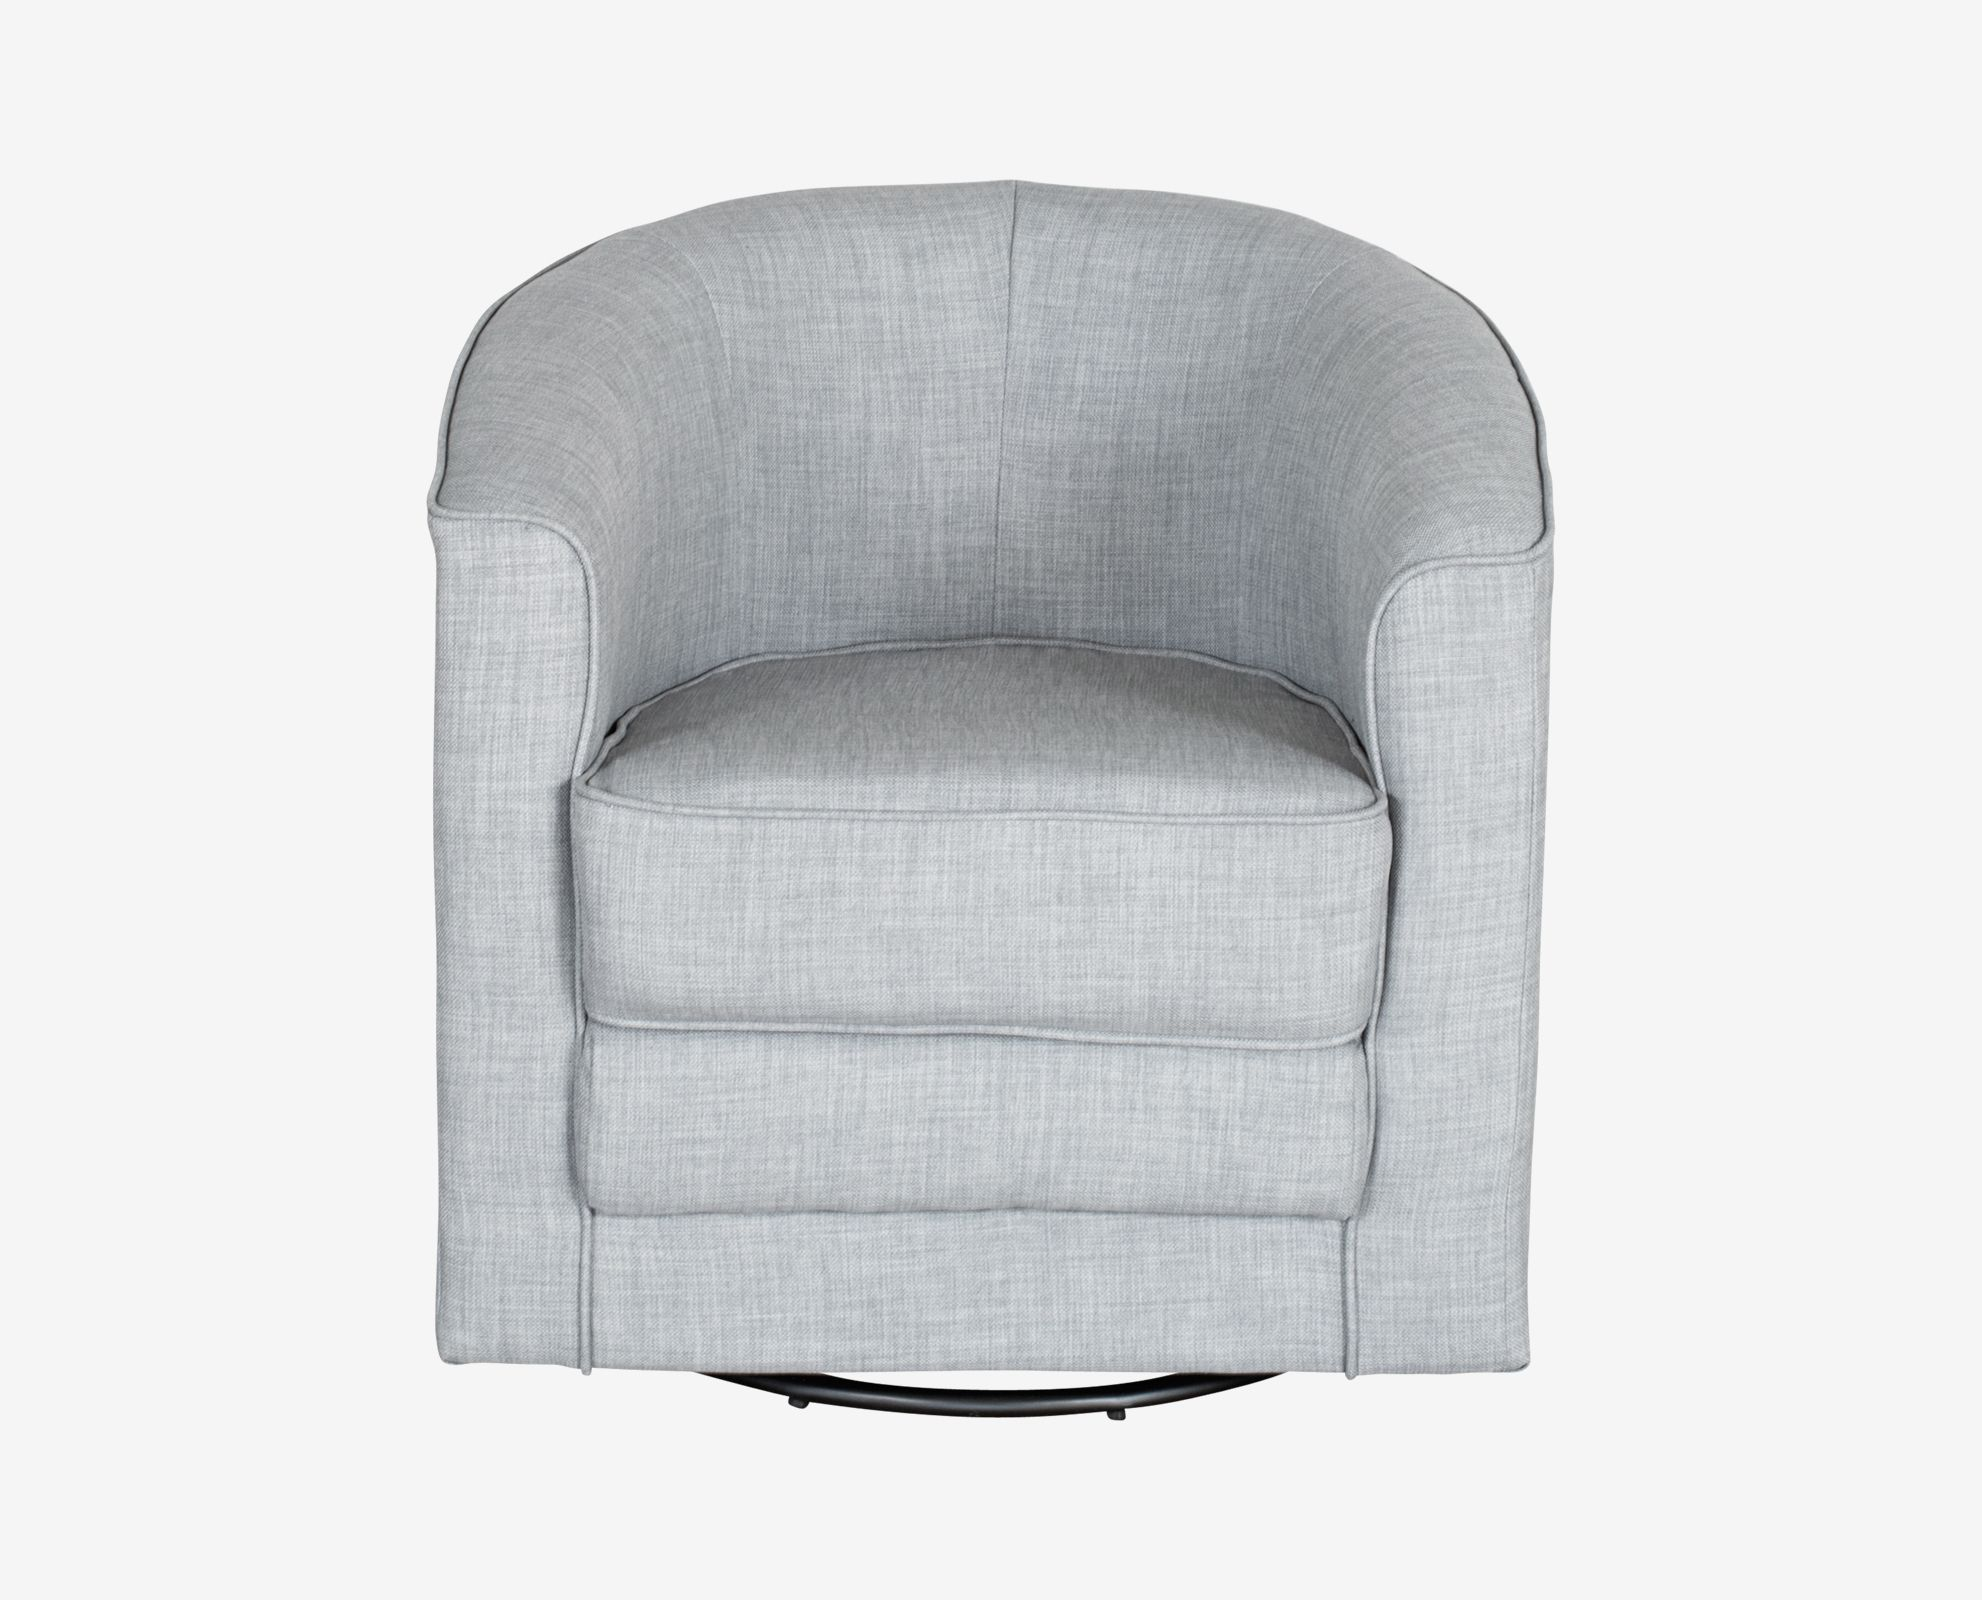 Theva Swivel Chair 29 X 29 (With images) Chair, Swivel